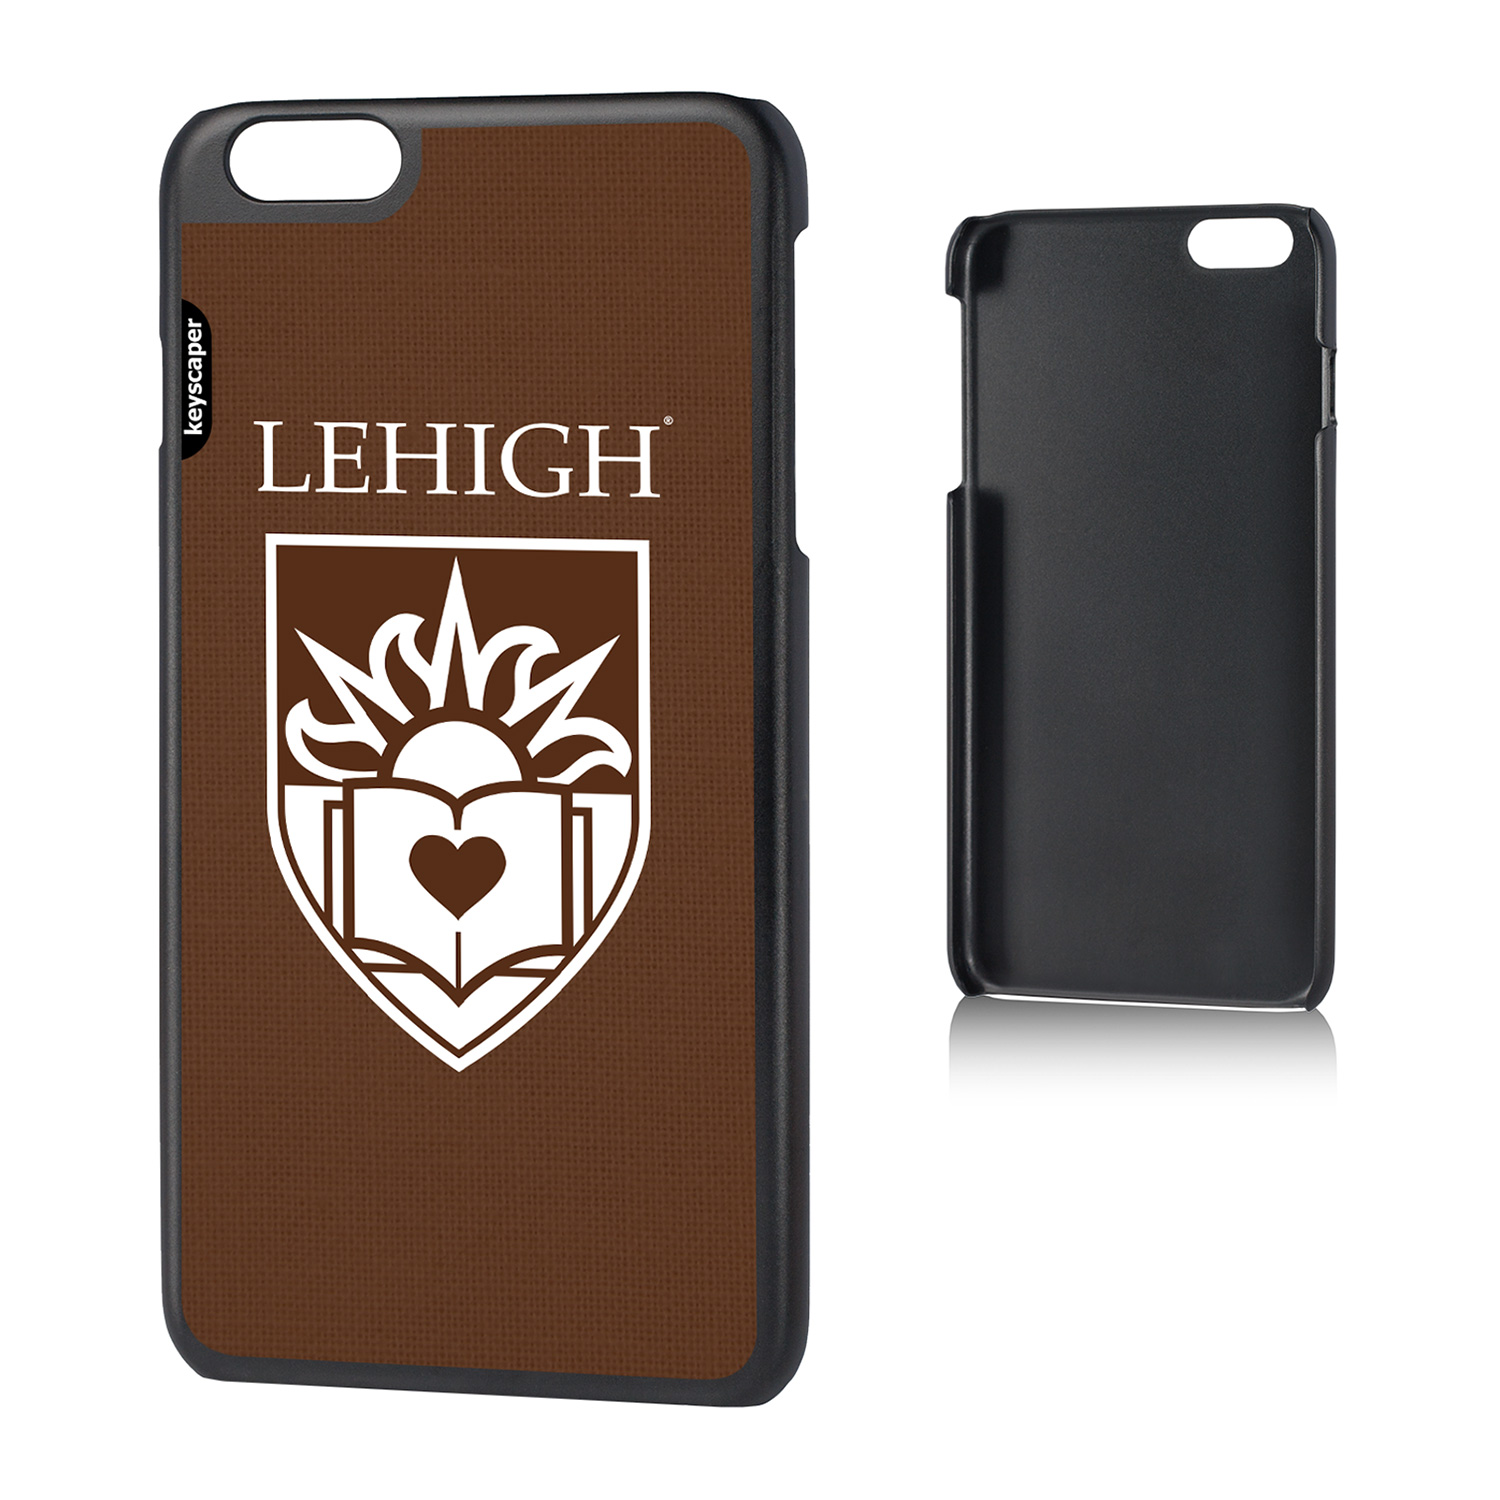 Lehigh University Slim Case for the iPhone 6+ / 6S+ / 7+ / 8+ NCAA